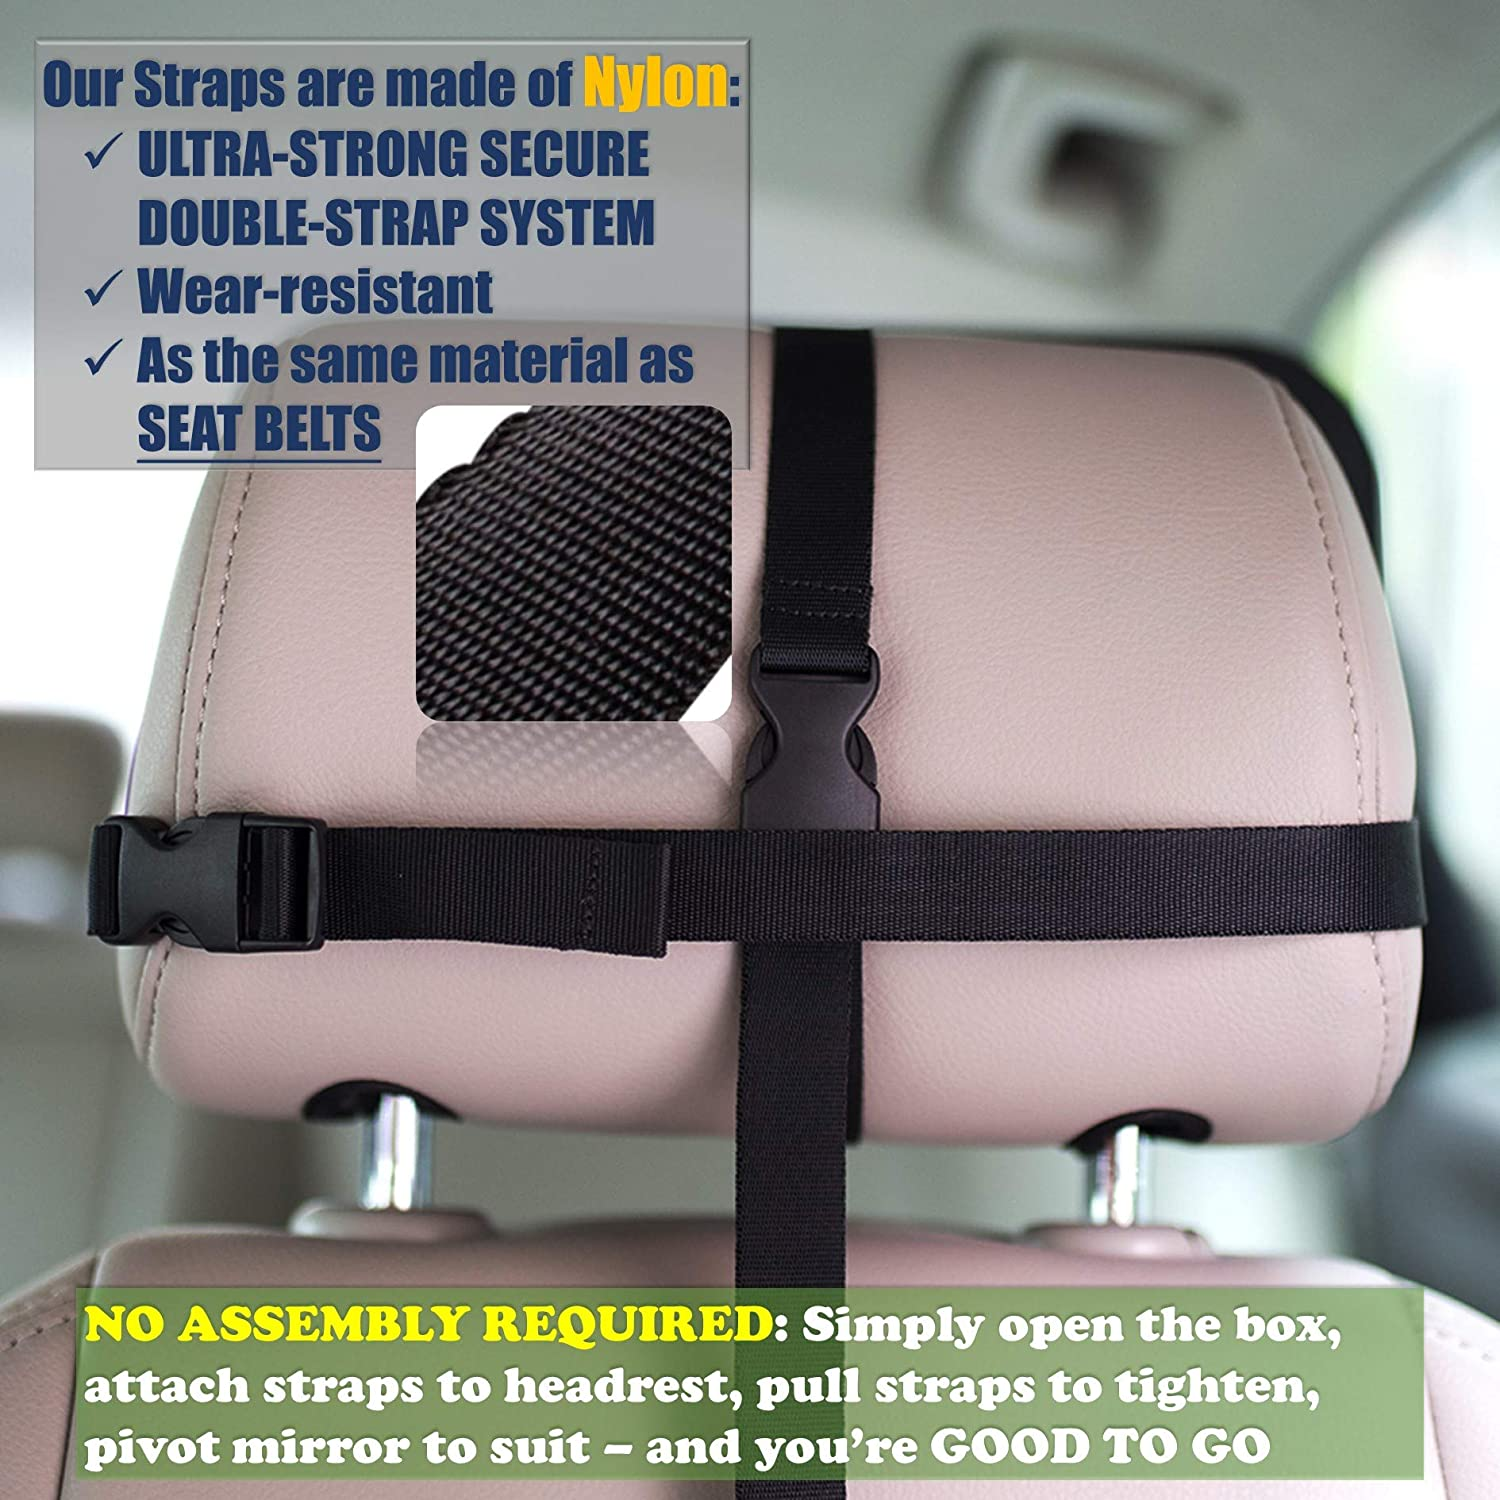 Purple Paws Shatterproof Car Back Seat Mirror for Newborn Baby Infants Kids Children Toddlers Boys - Safety Certified /& Crash Tested Crystal Clear Rear Facing Baby Mirror Baby Car Mirror